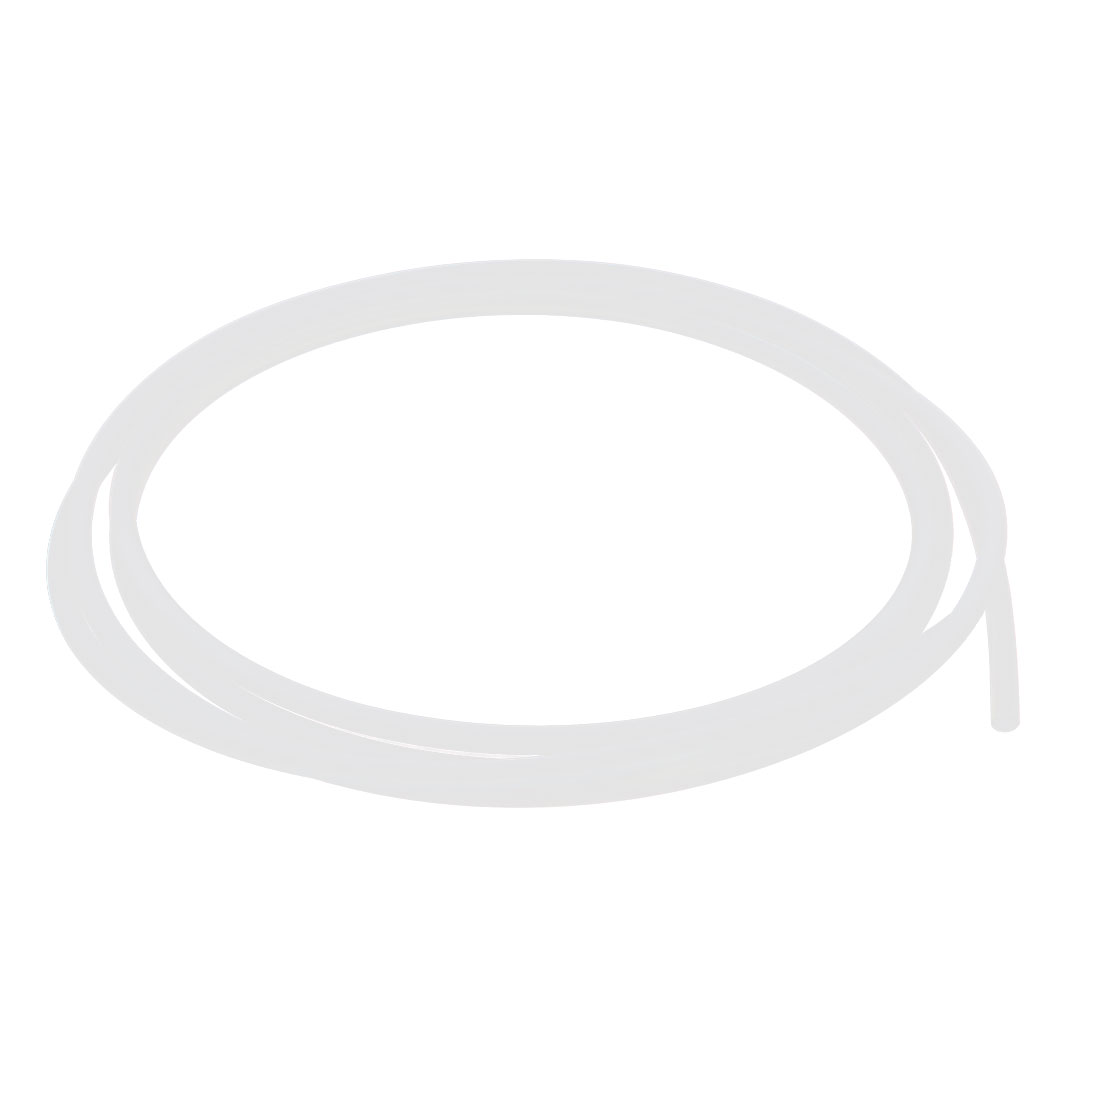 5M Length 9mm ID 12mm OD PTFE Tubing Tube Pipe for 3D Printer RepRap